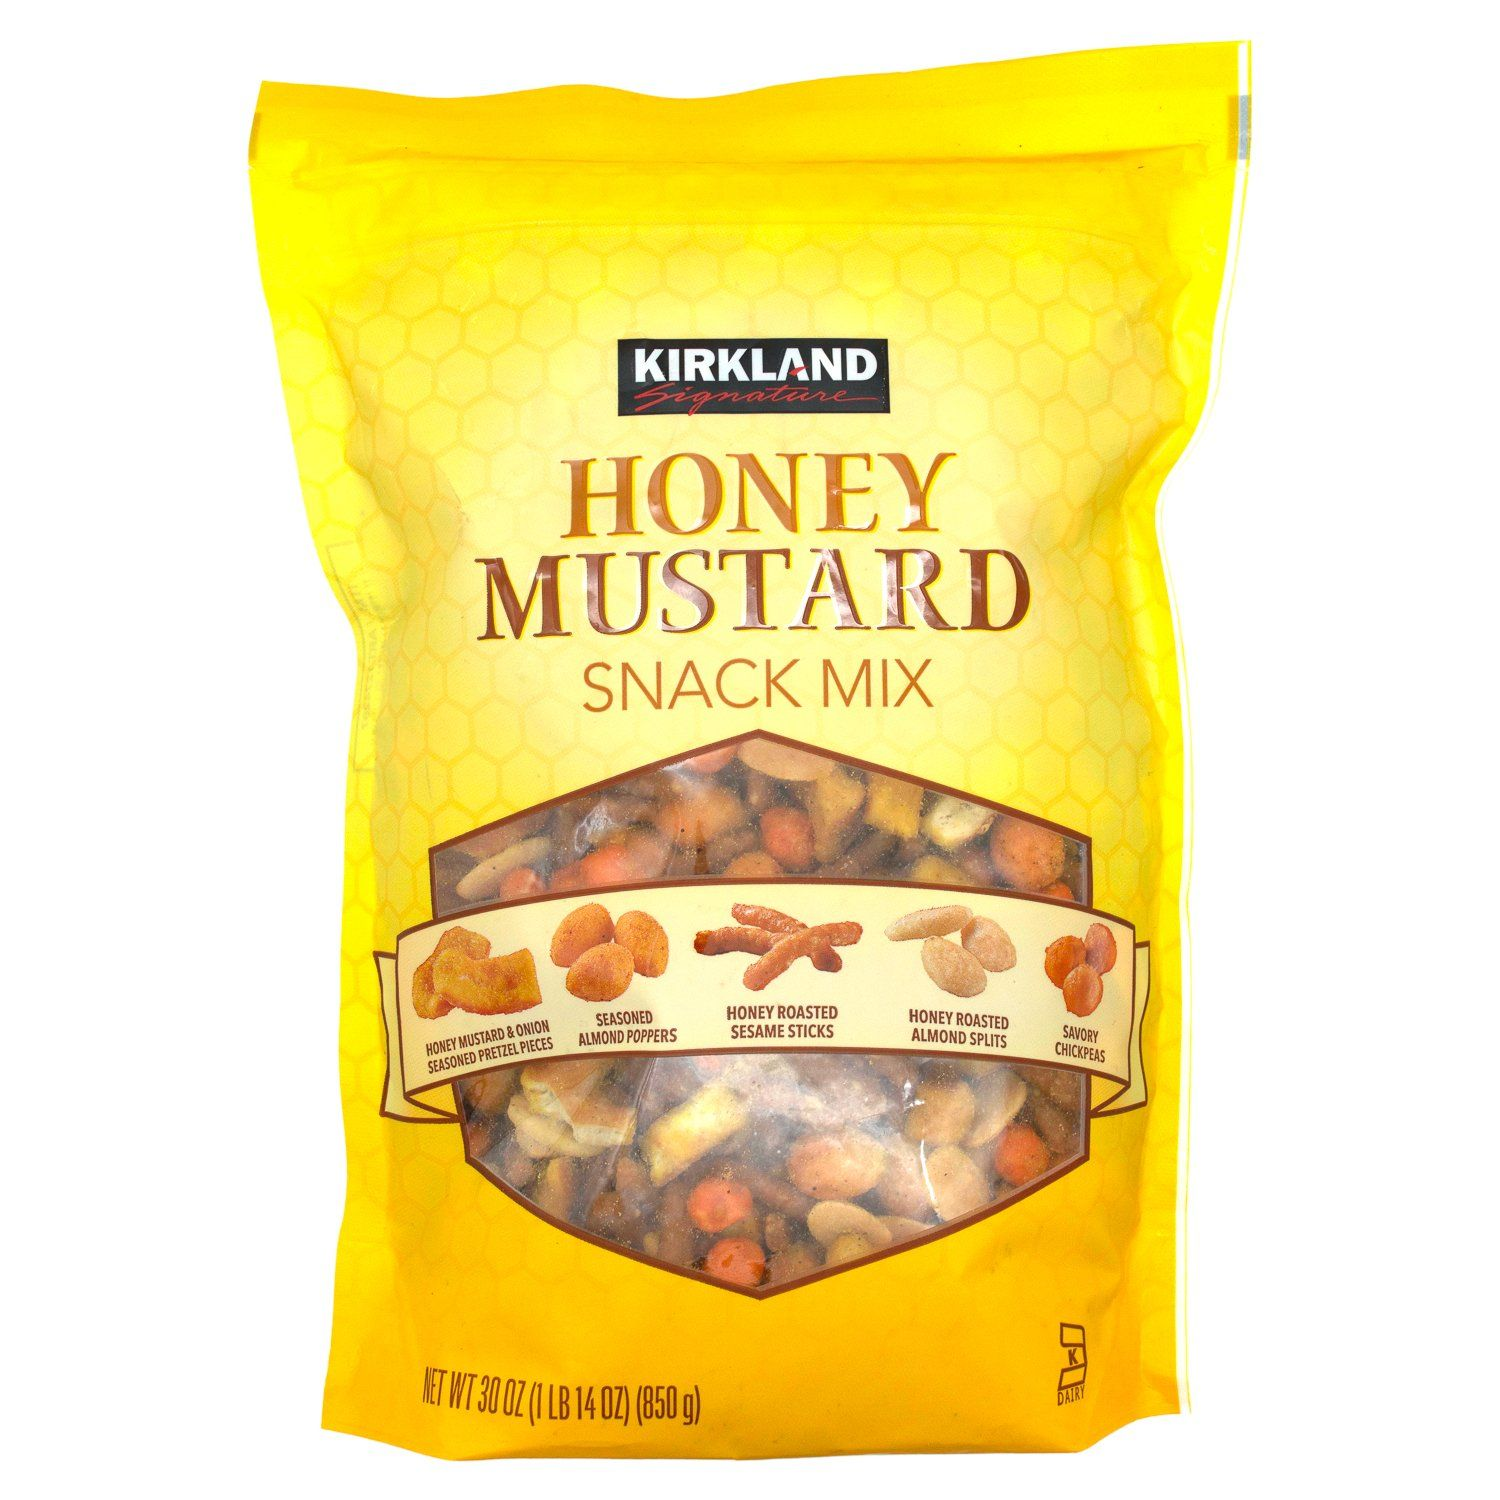 Kirkland Signature Honey Mustard Snack Mix Kirkland Signature 30 Ounce